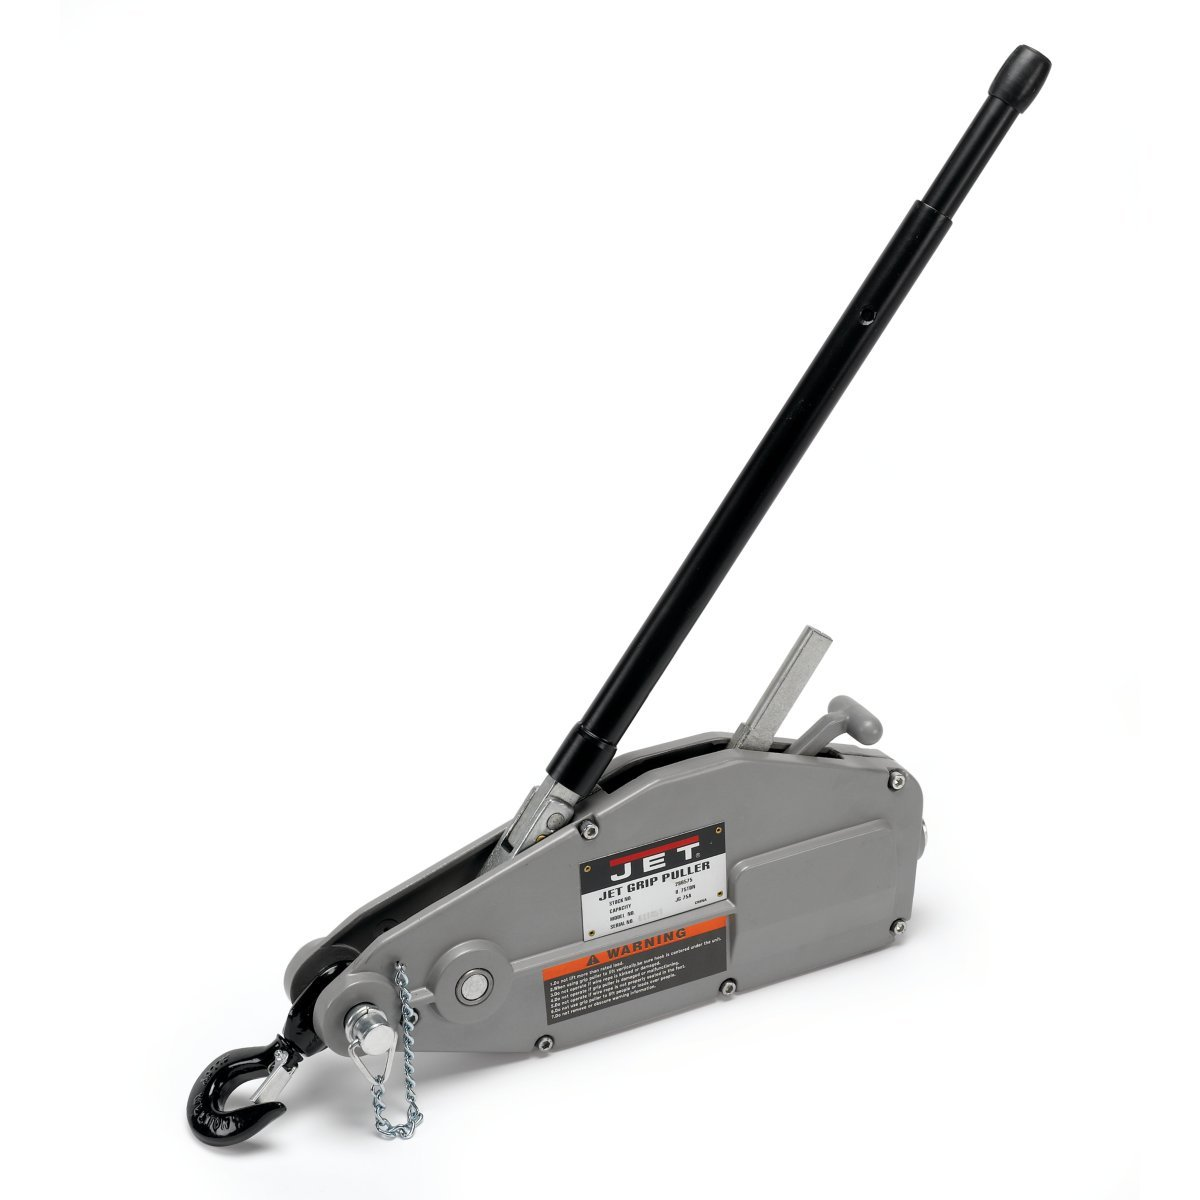 JET 286575K 3/4-Ton Wire Rope Grip Puller with Cable - Pulleys ...